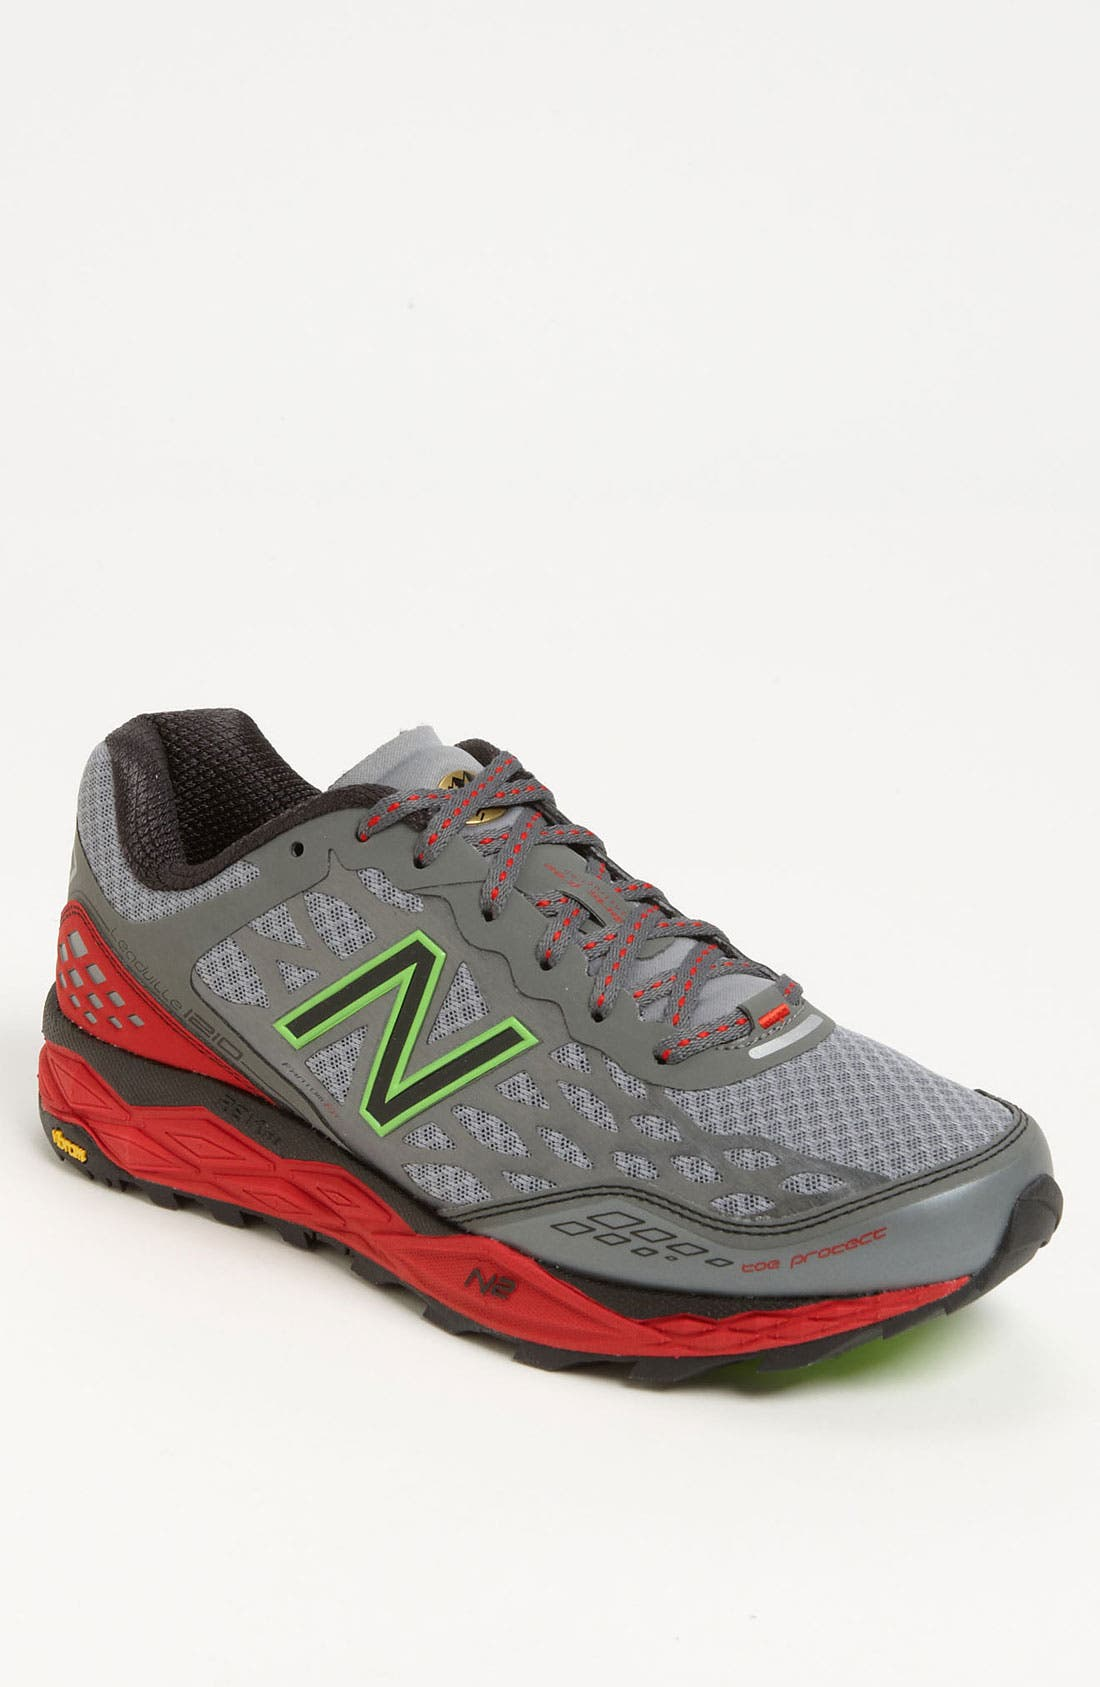 Alternate Image 1 Selected - New Balance '1210' Trail Running Shoe (Men)